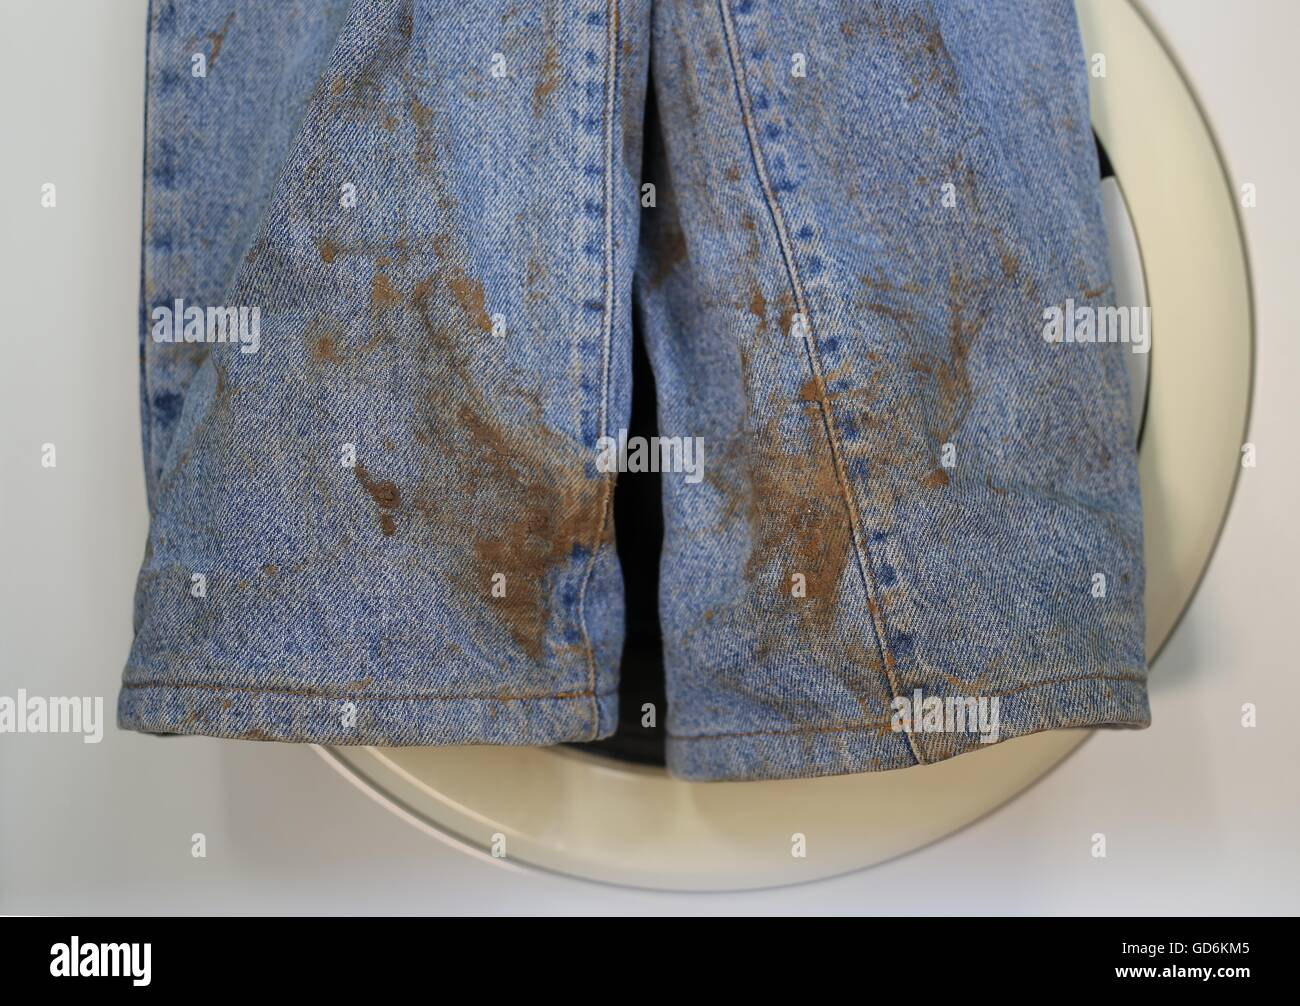 Macchia Pittura Jeans Stained Trousers Immagini Stained Trousers Fotos Stock Alamy